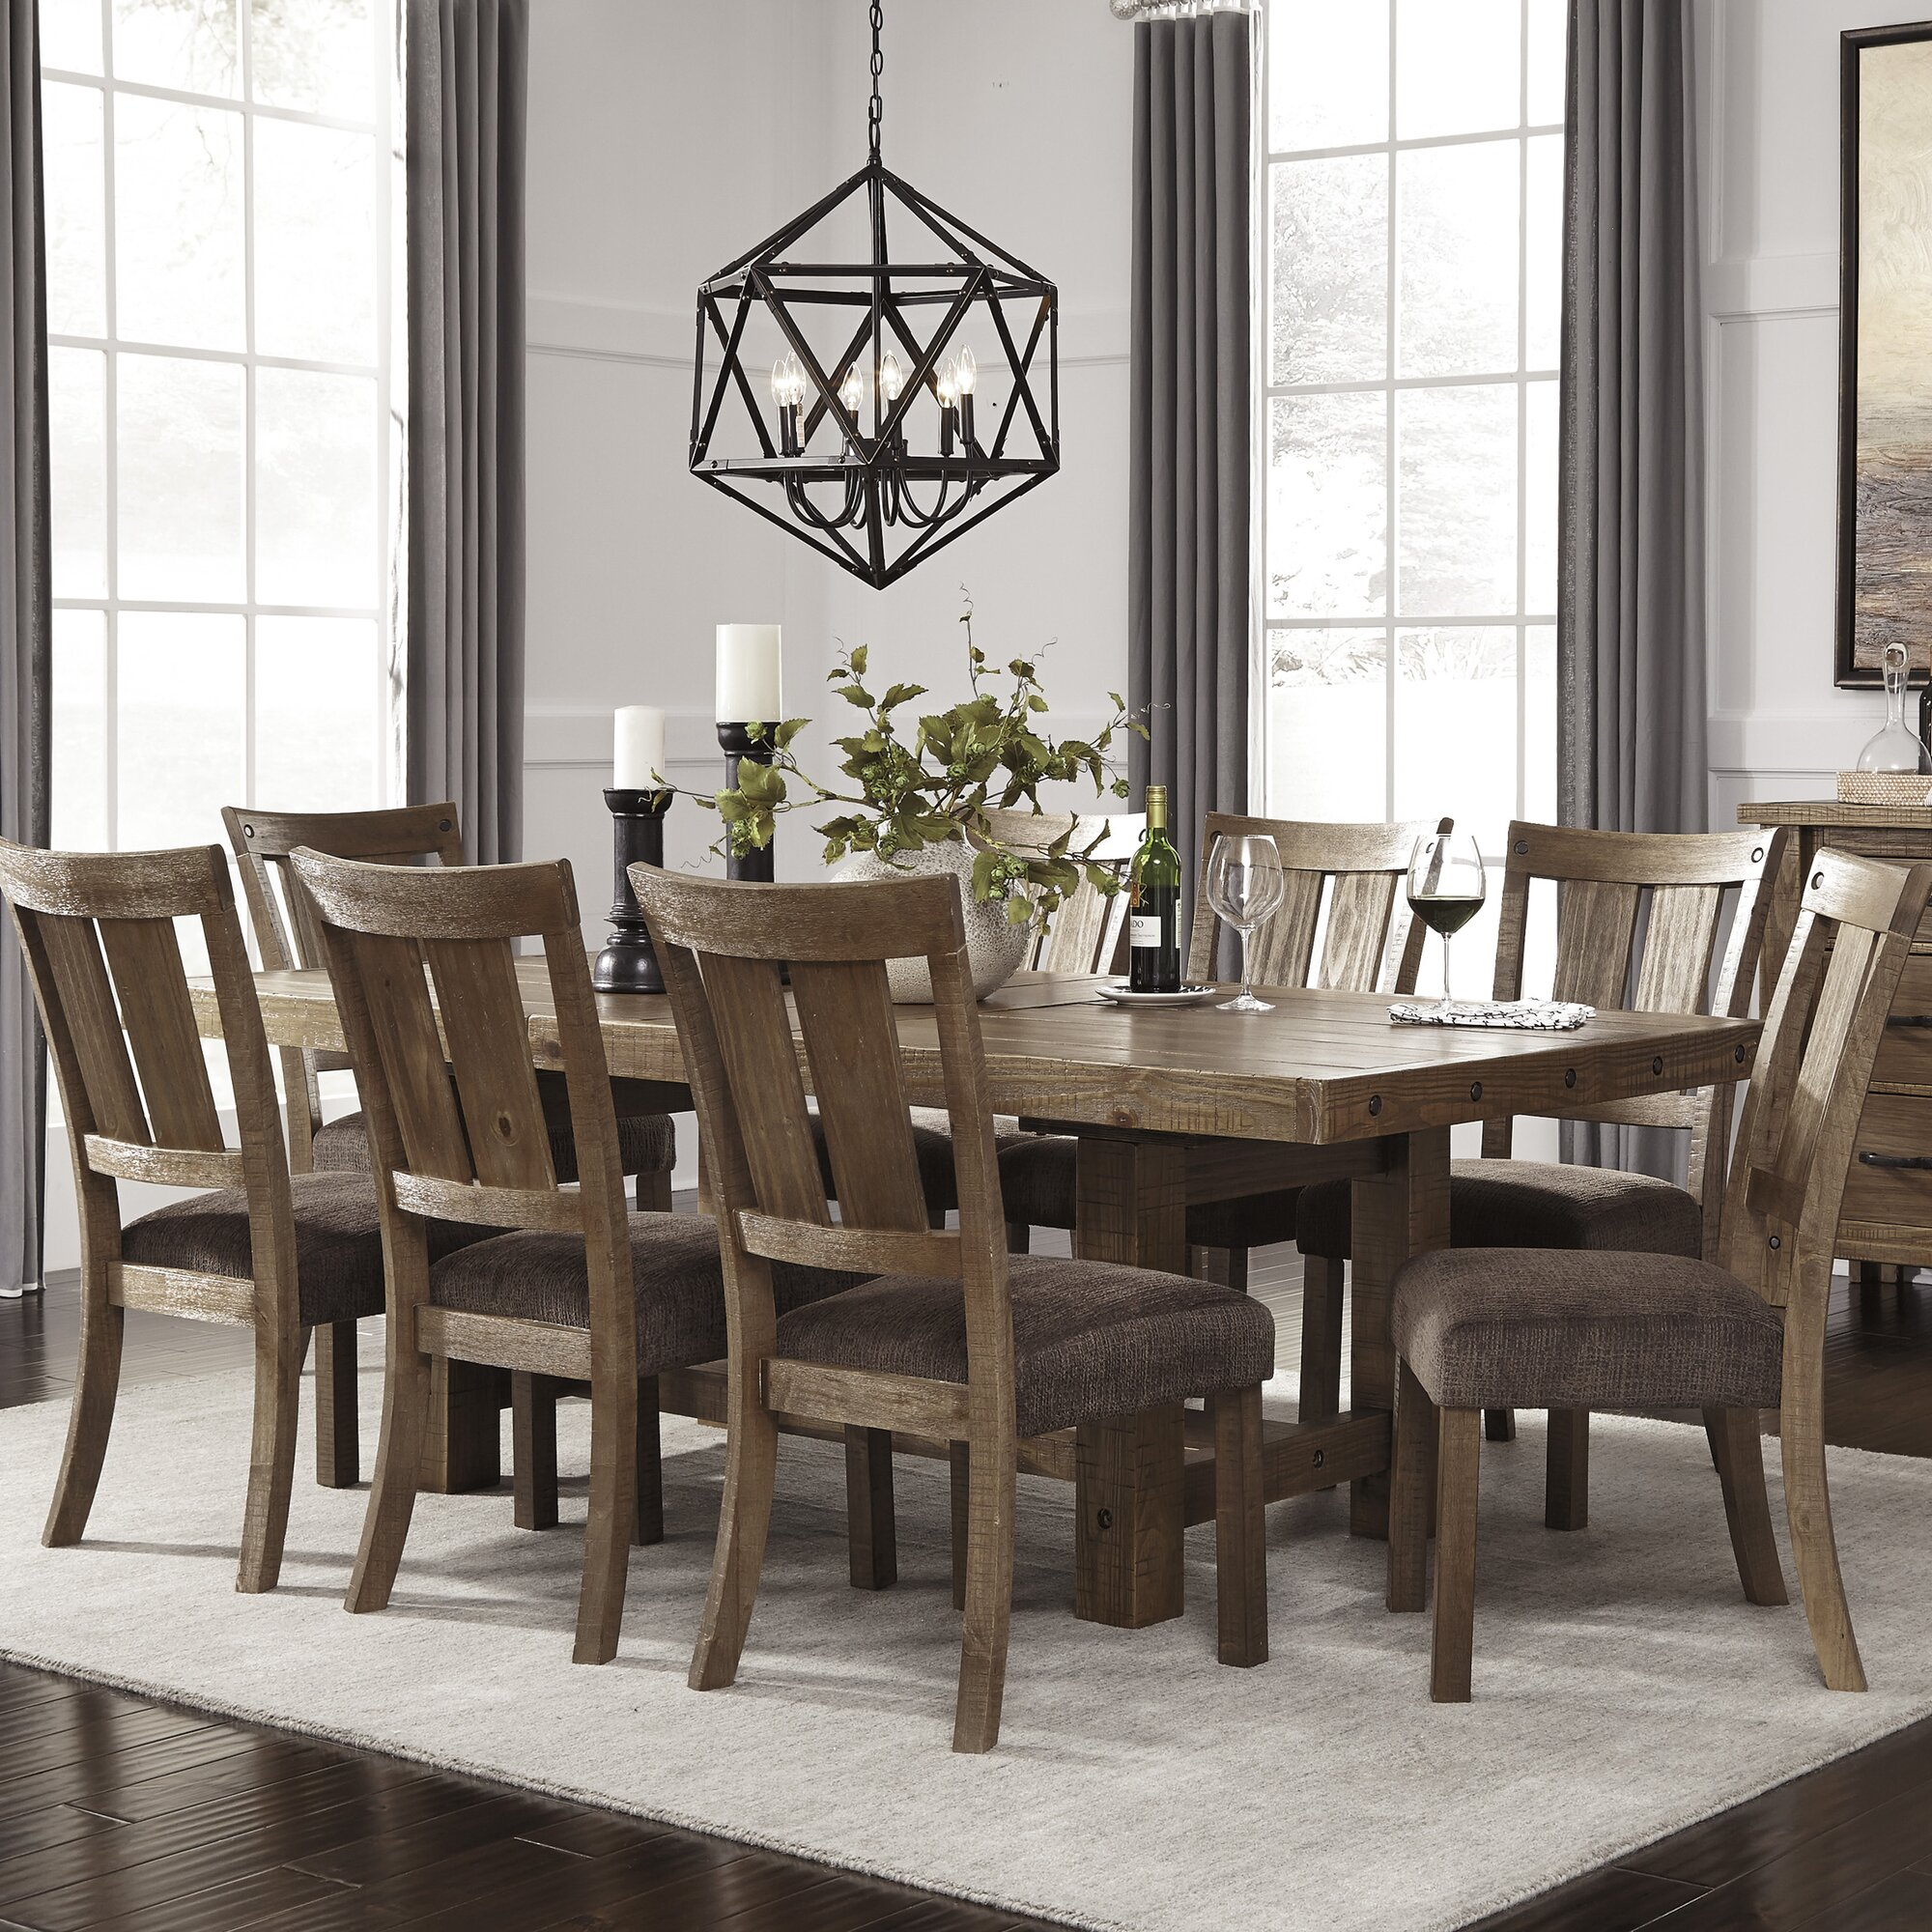 Piece Dining Sets Youll Love Wayfair - Dining rooms set